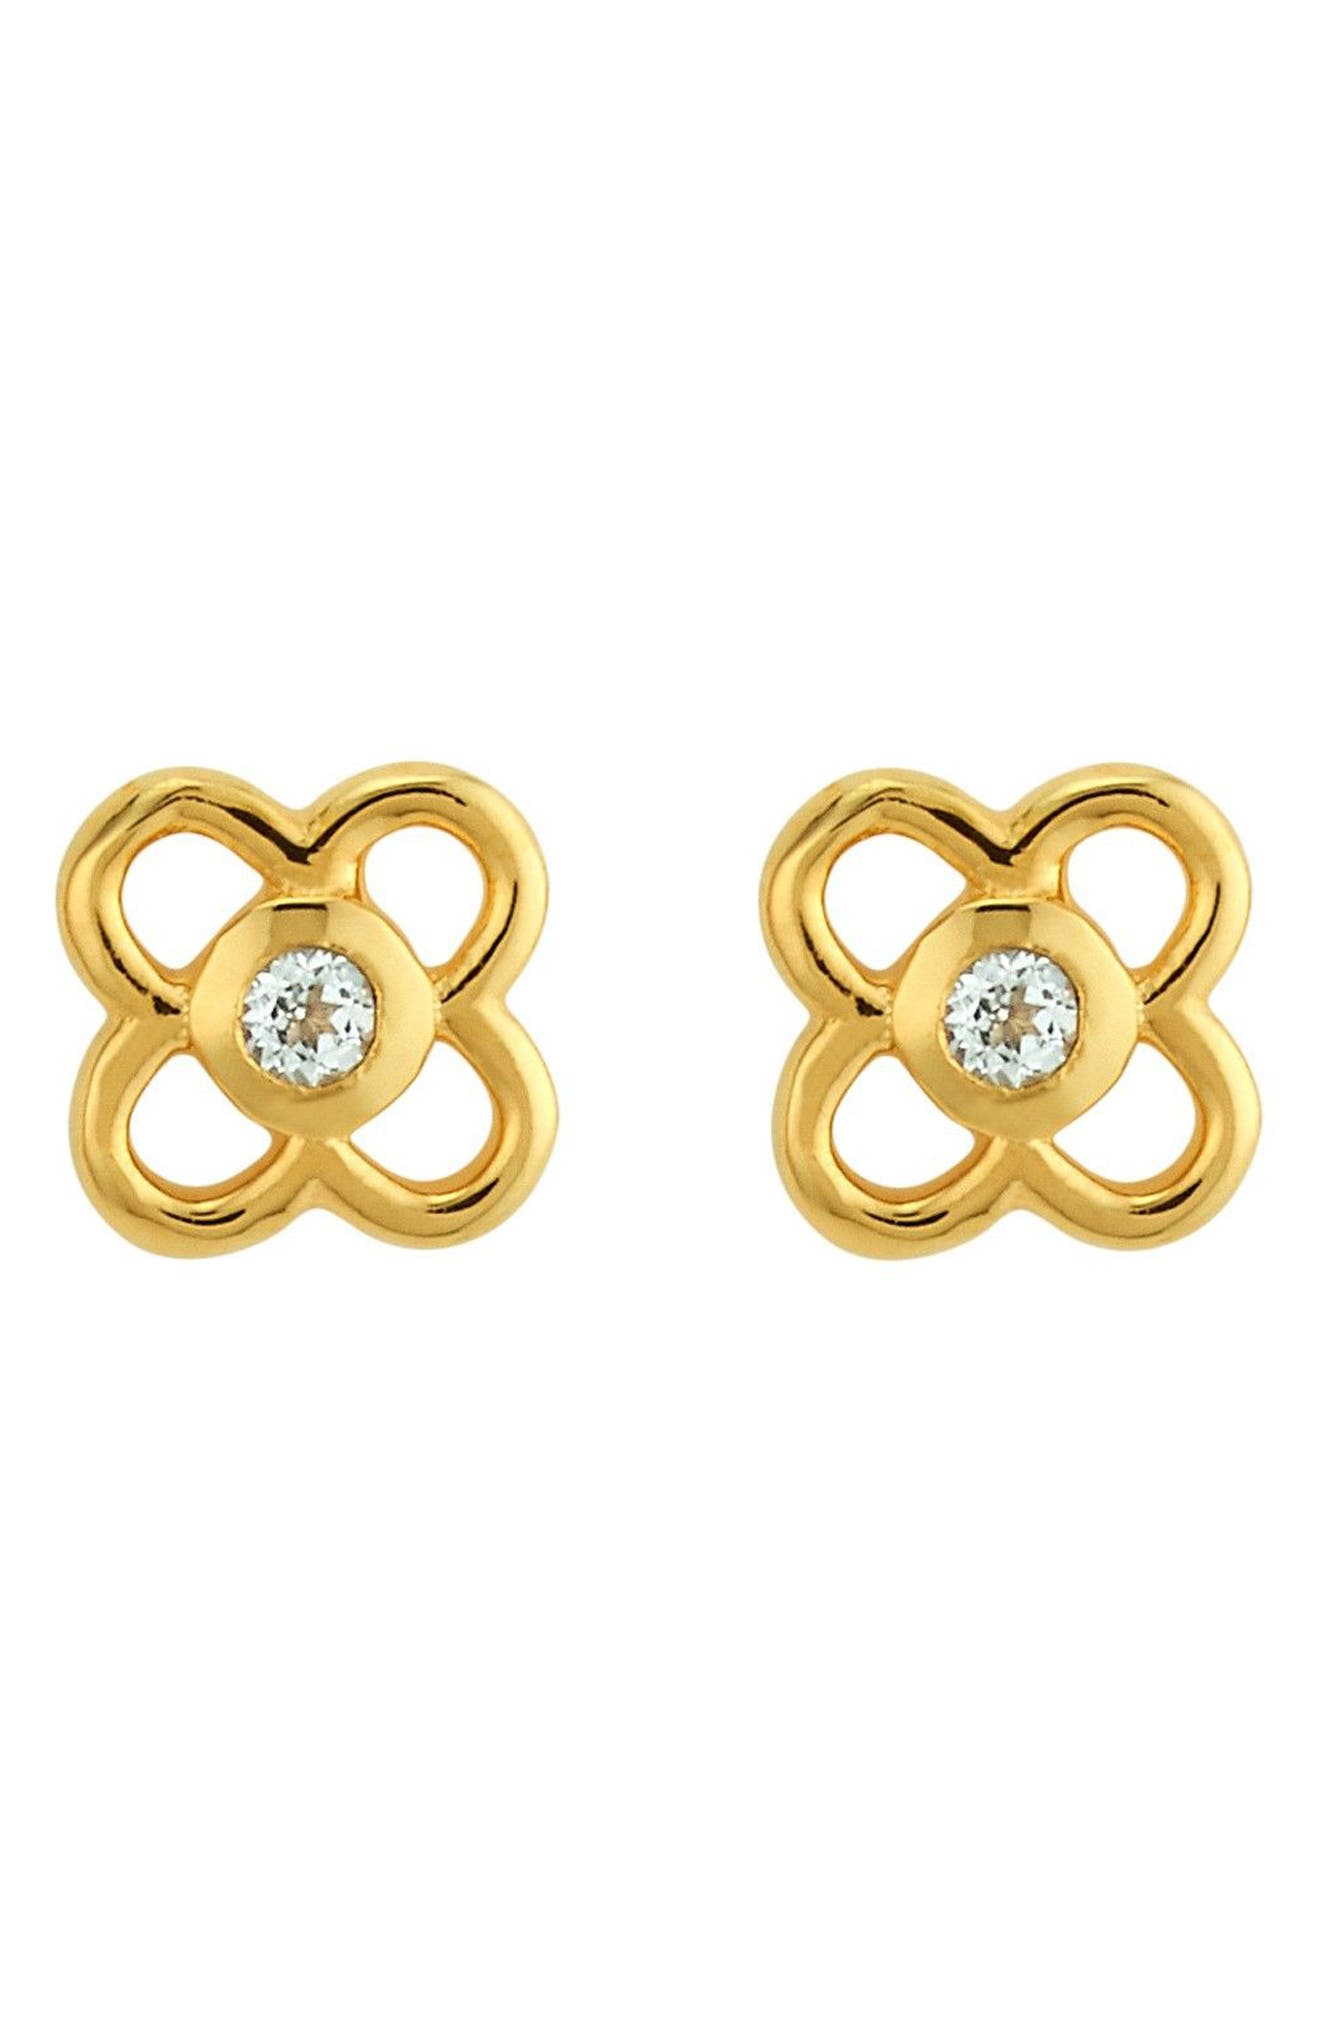 Petite Paloma Stud Earrings,                         Main,                         color, Crystal/ Gold